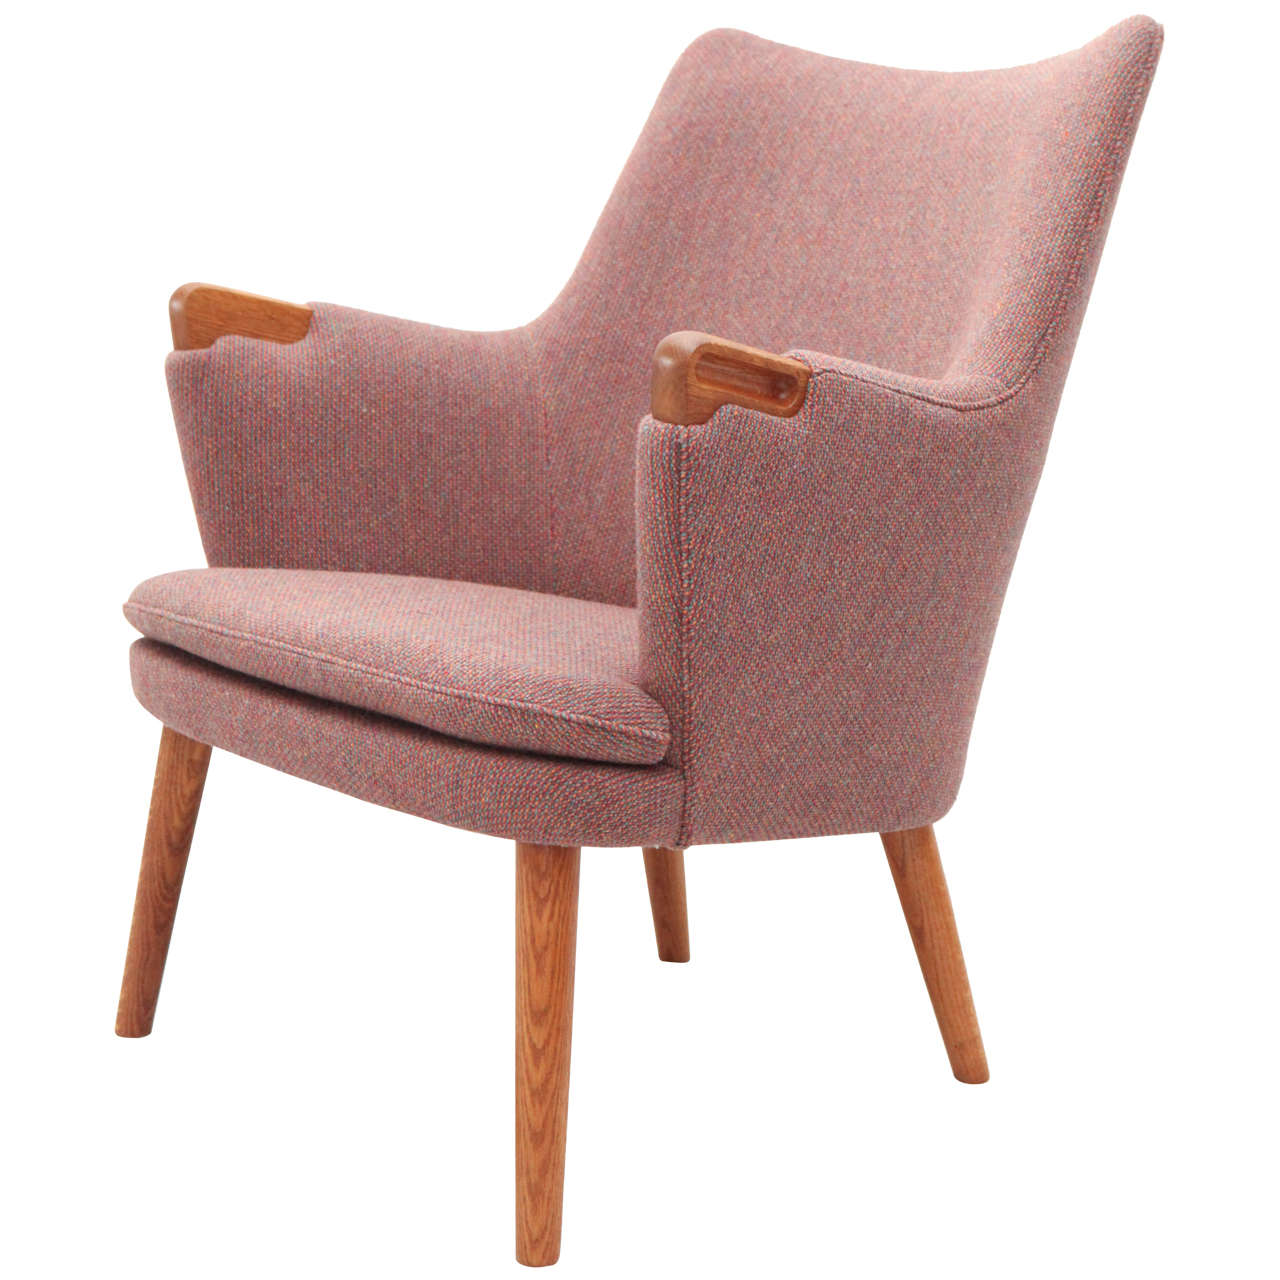 Hans Wegner Ap20 Lounge Chair For Sale At 1stdibs